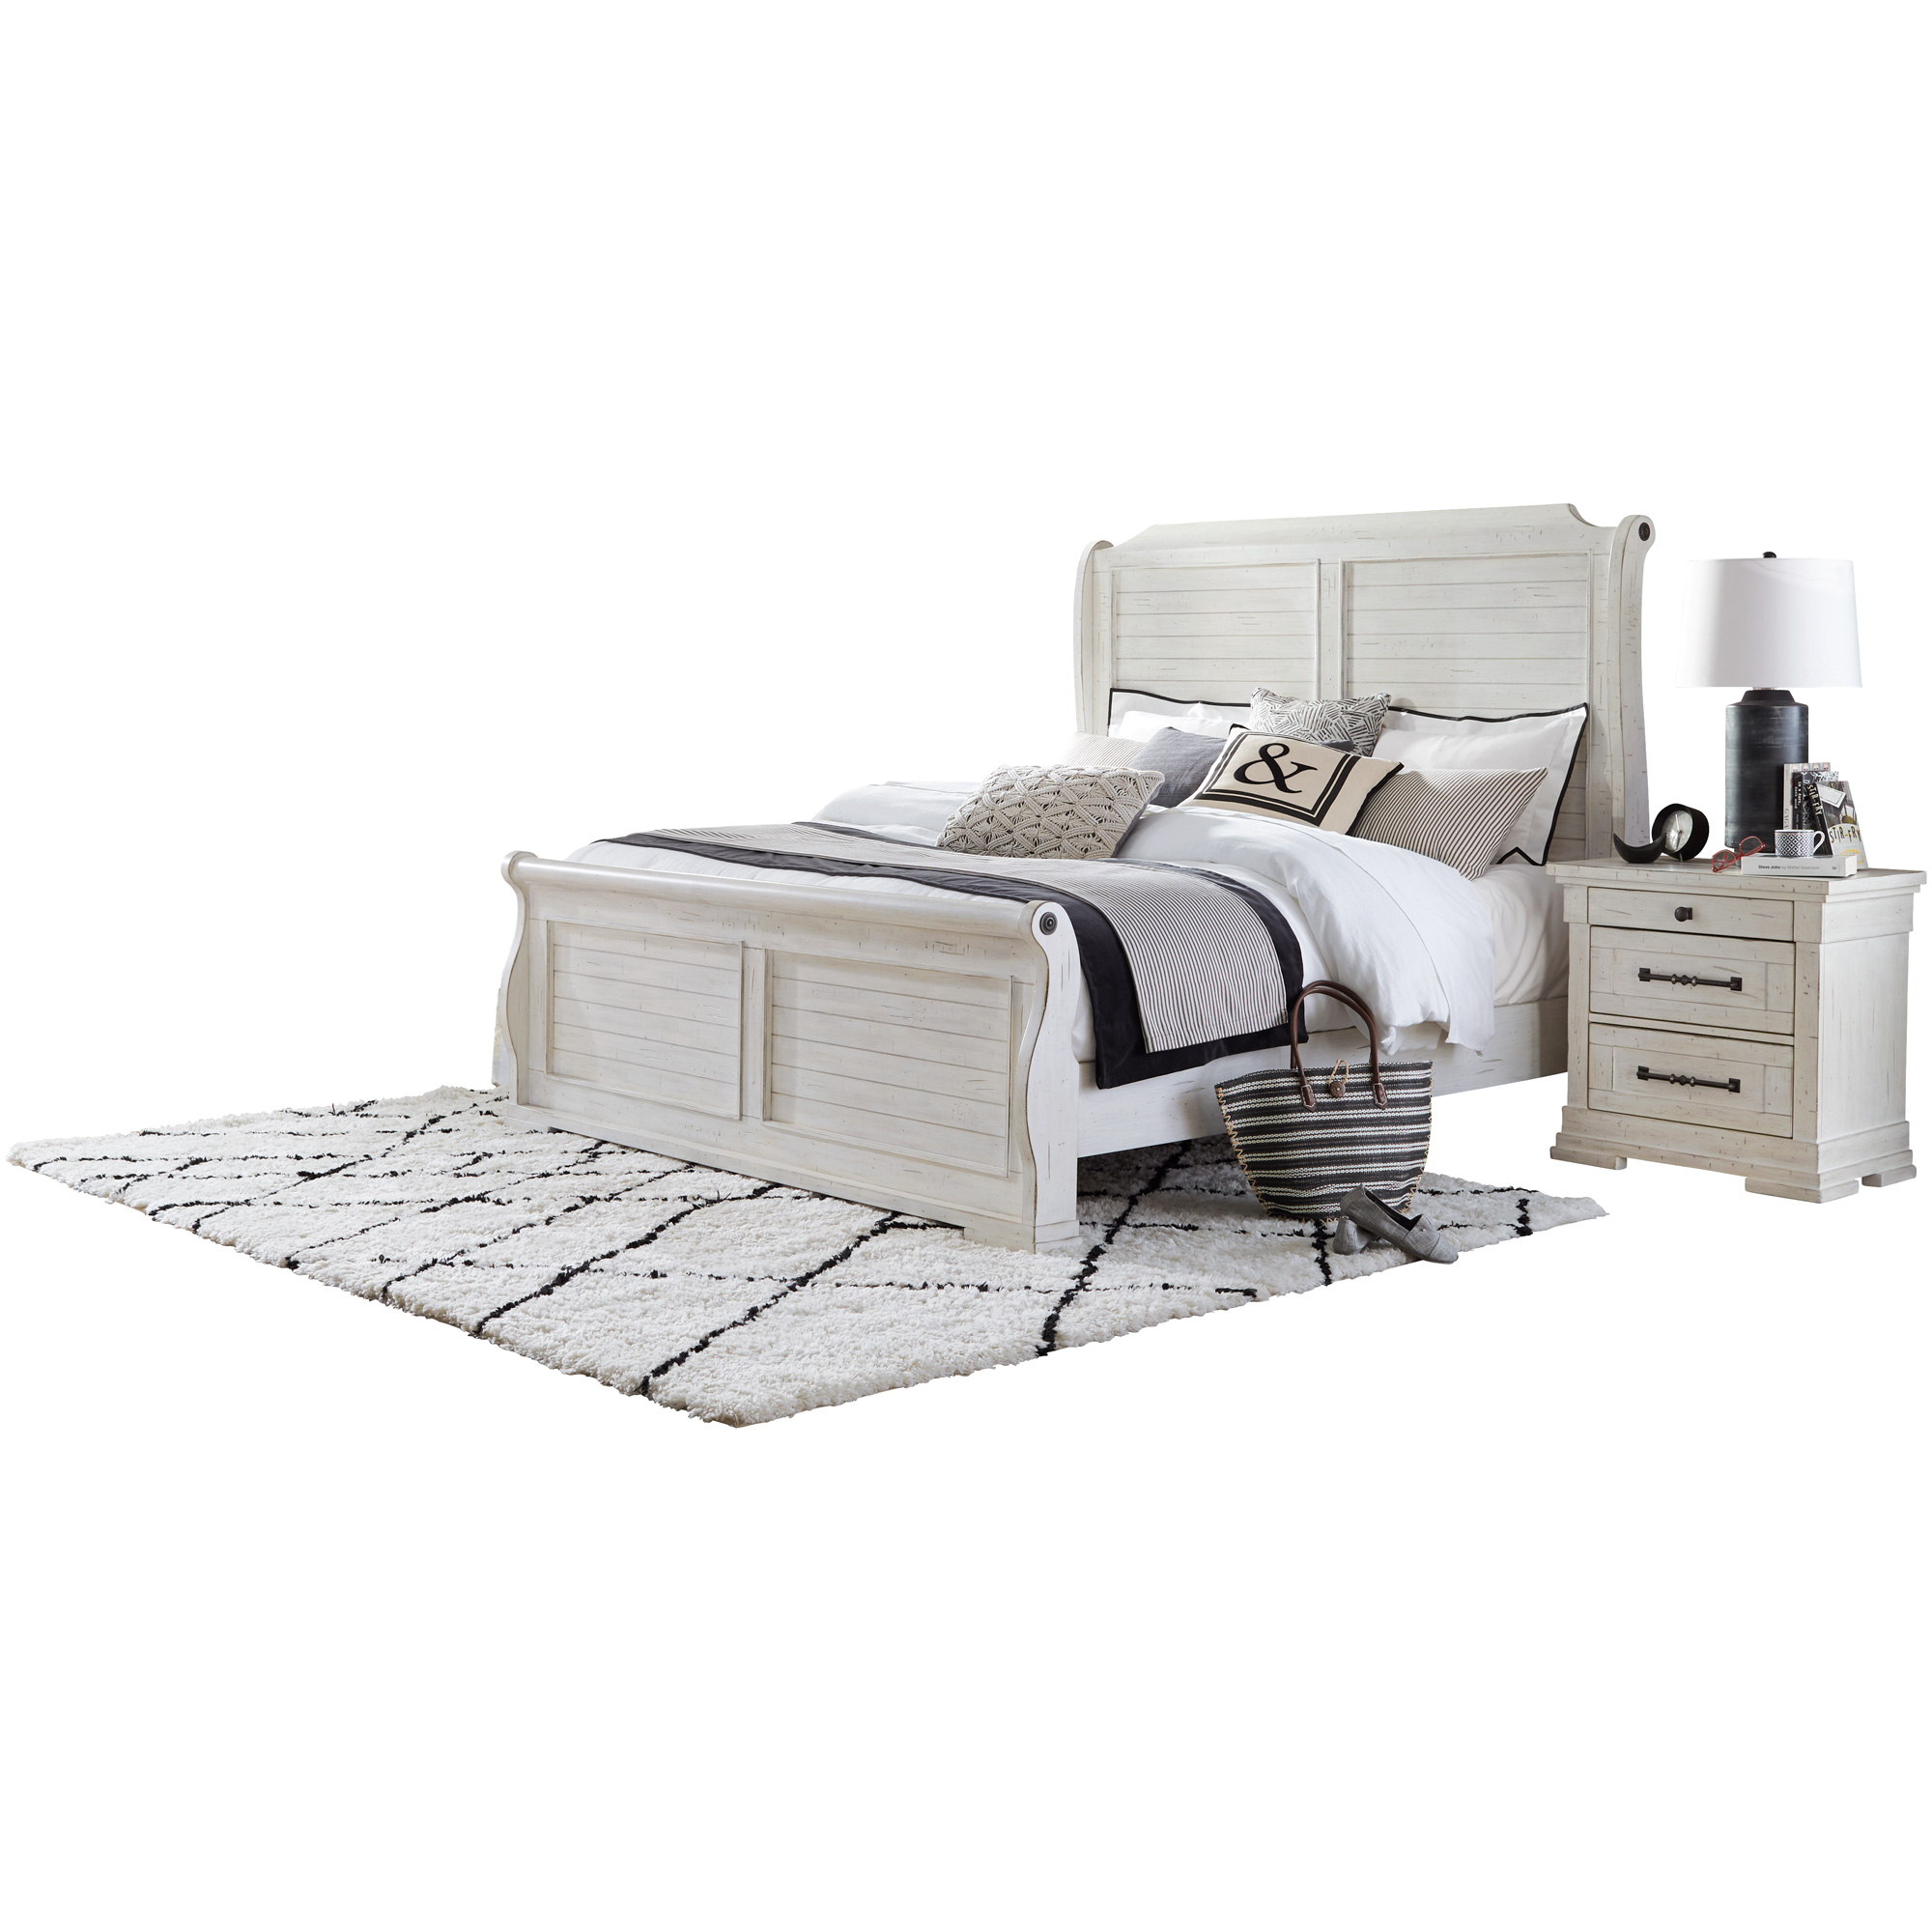 Lifestyle Enterprise | Bay Ridge White King Bed